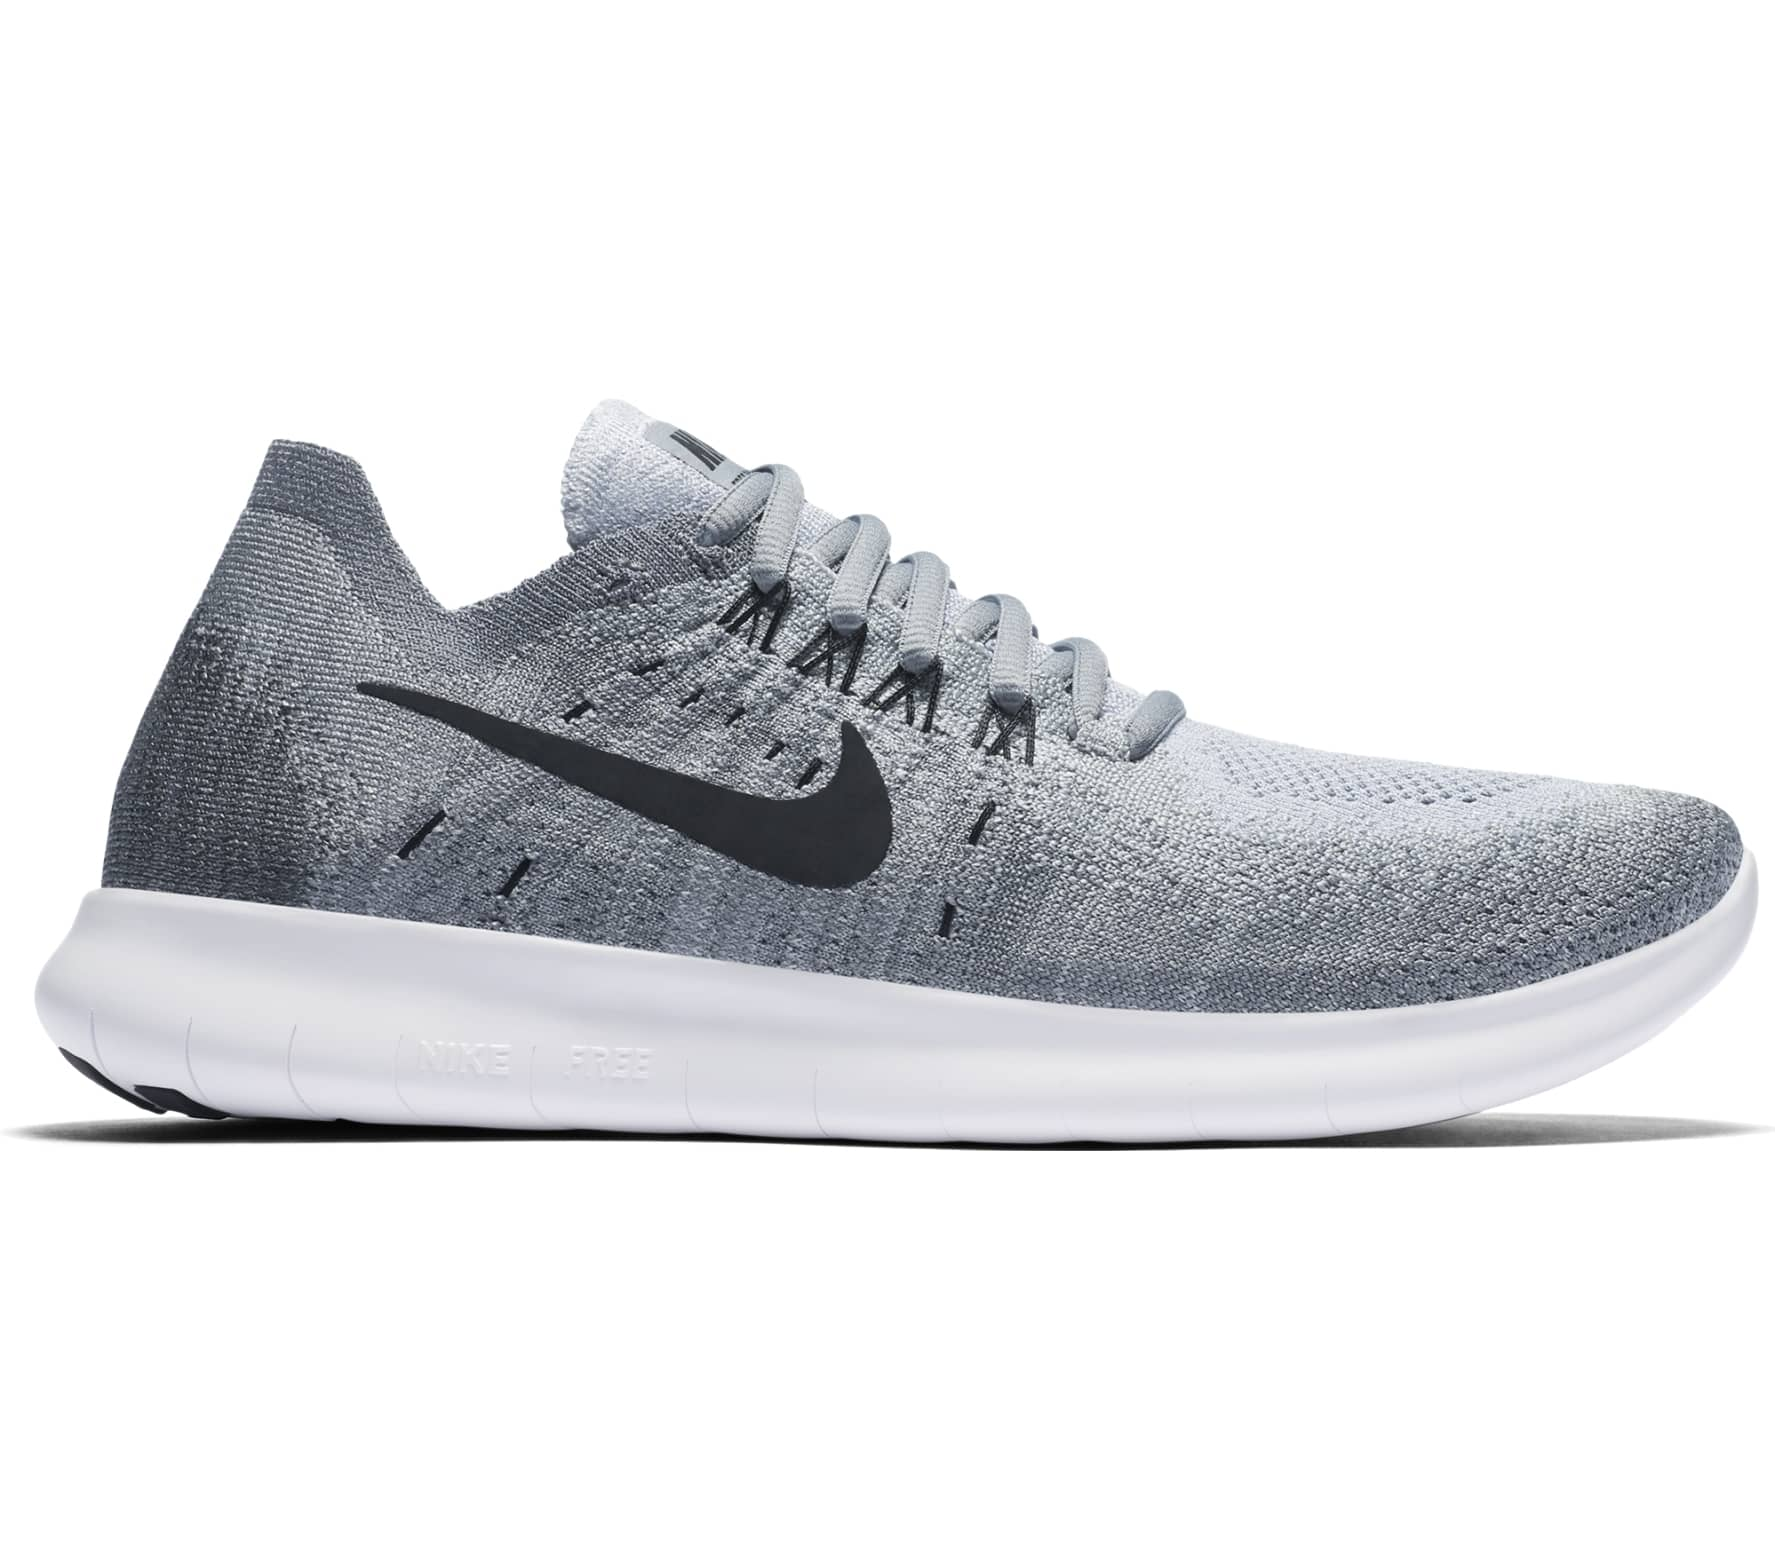 Nike - Free RN Flyknit 2017 women s running shoes (light grey white ... a7957e76e